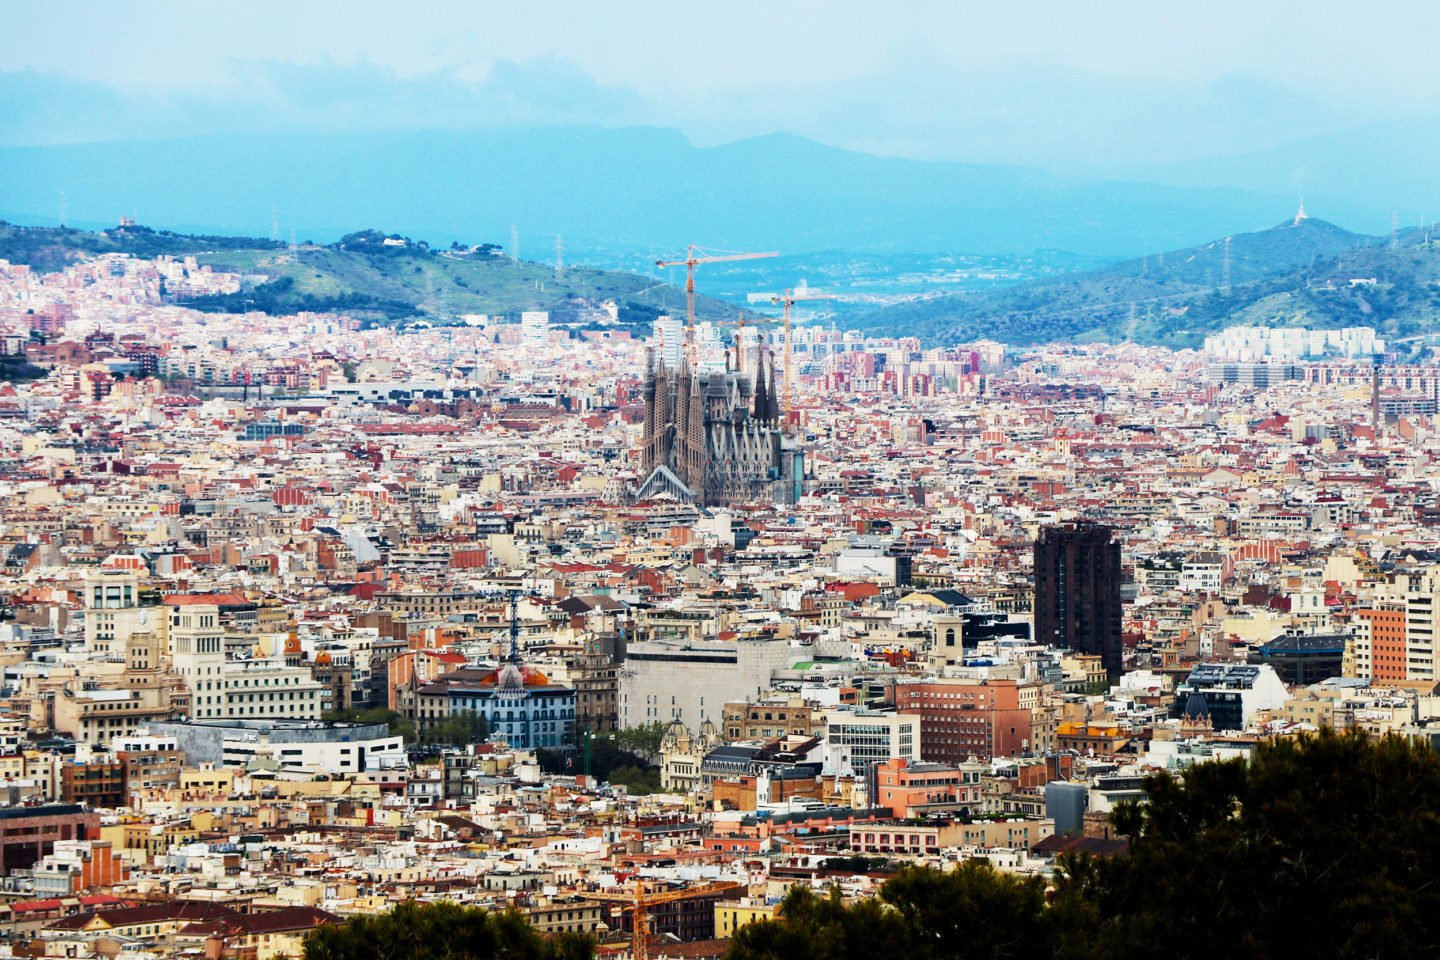 Aerial view of Barcelona from above